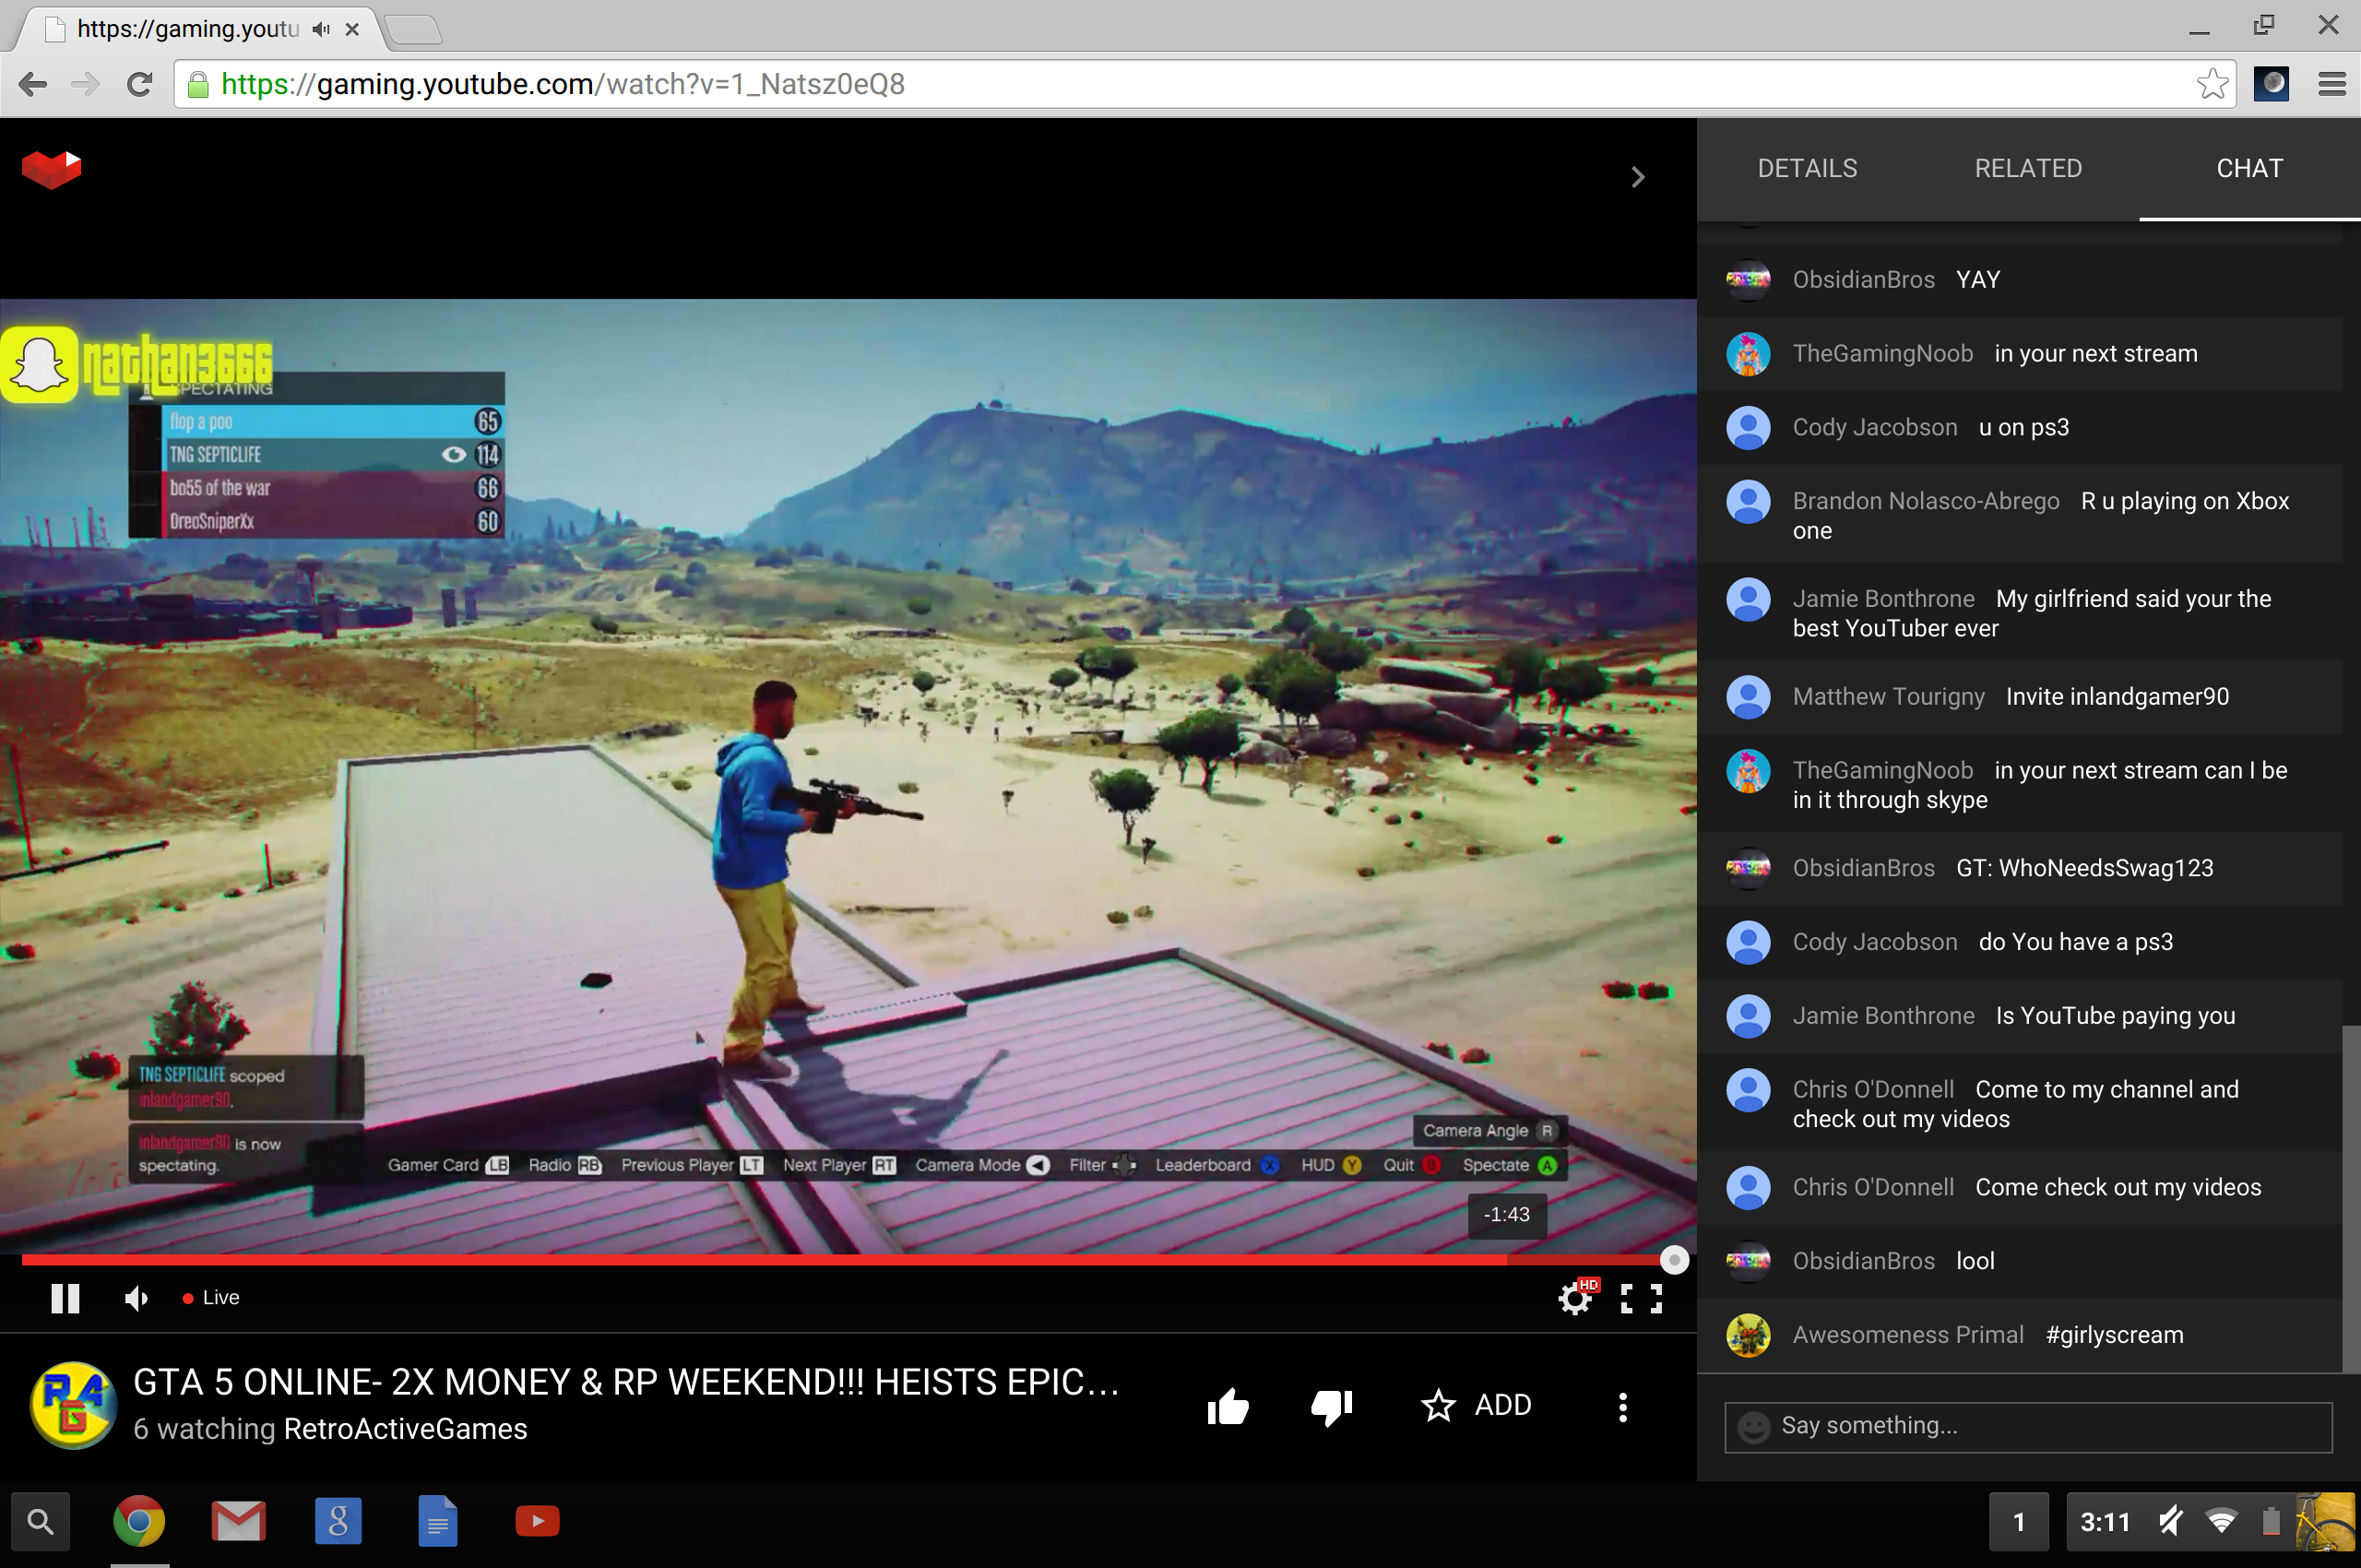 how to rewind a live stream on youtube